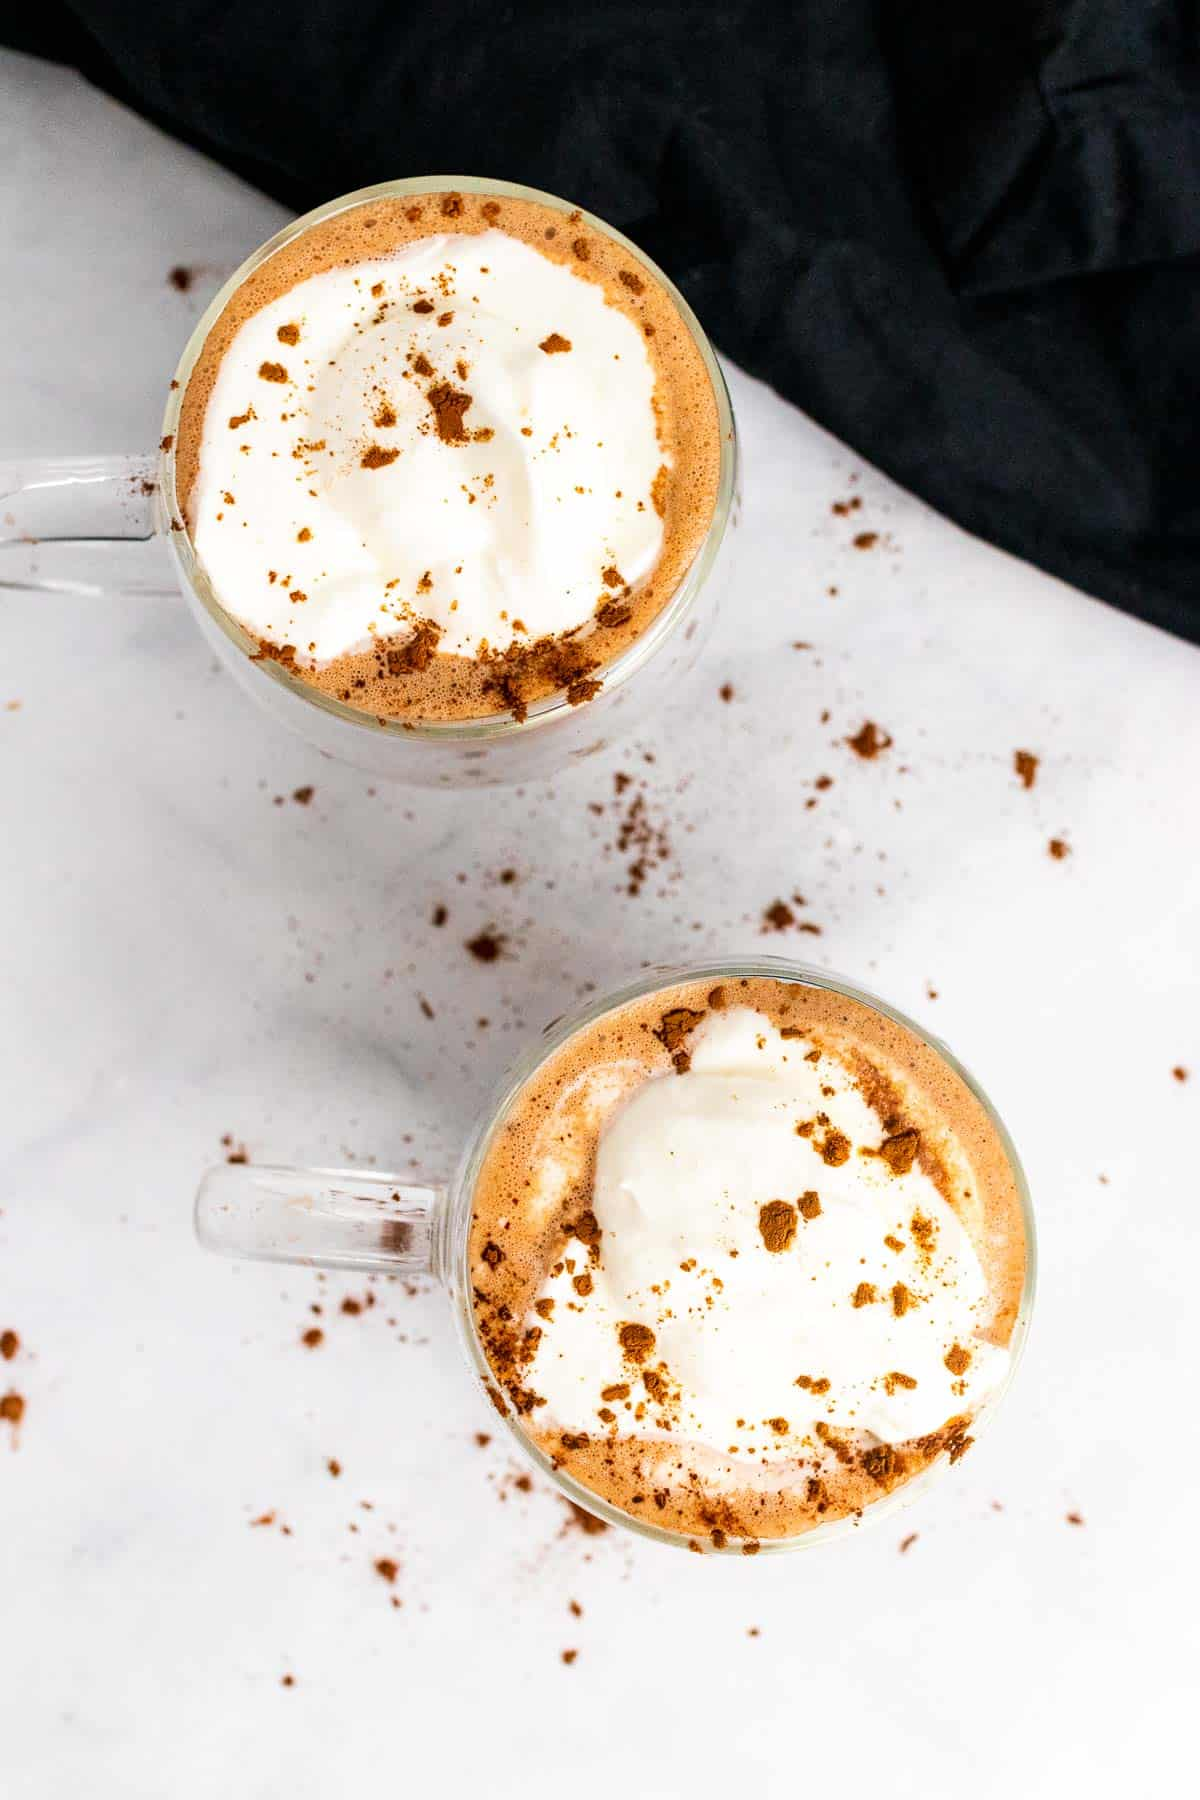 Two mugs of hot chocolate topped with whipped cream and cocoa powder, as seen from above